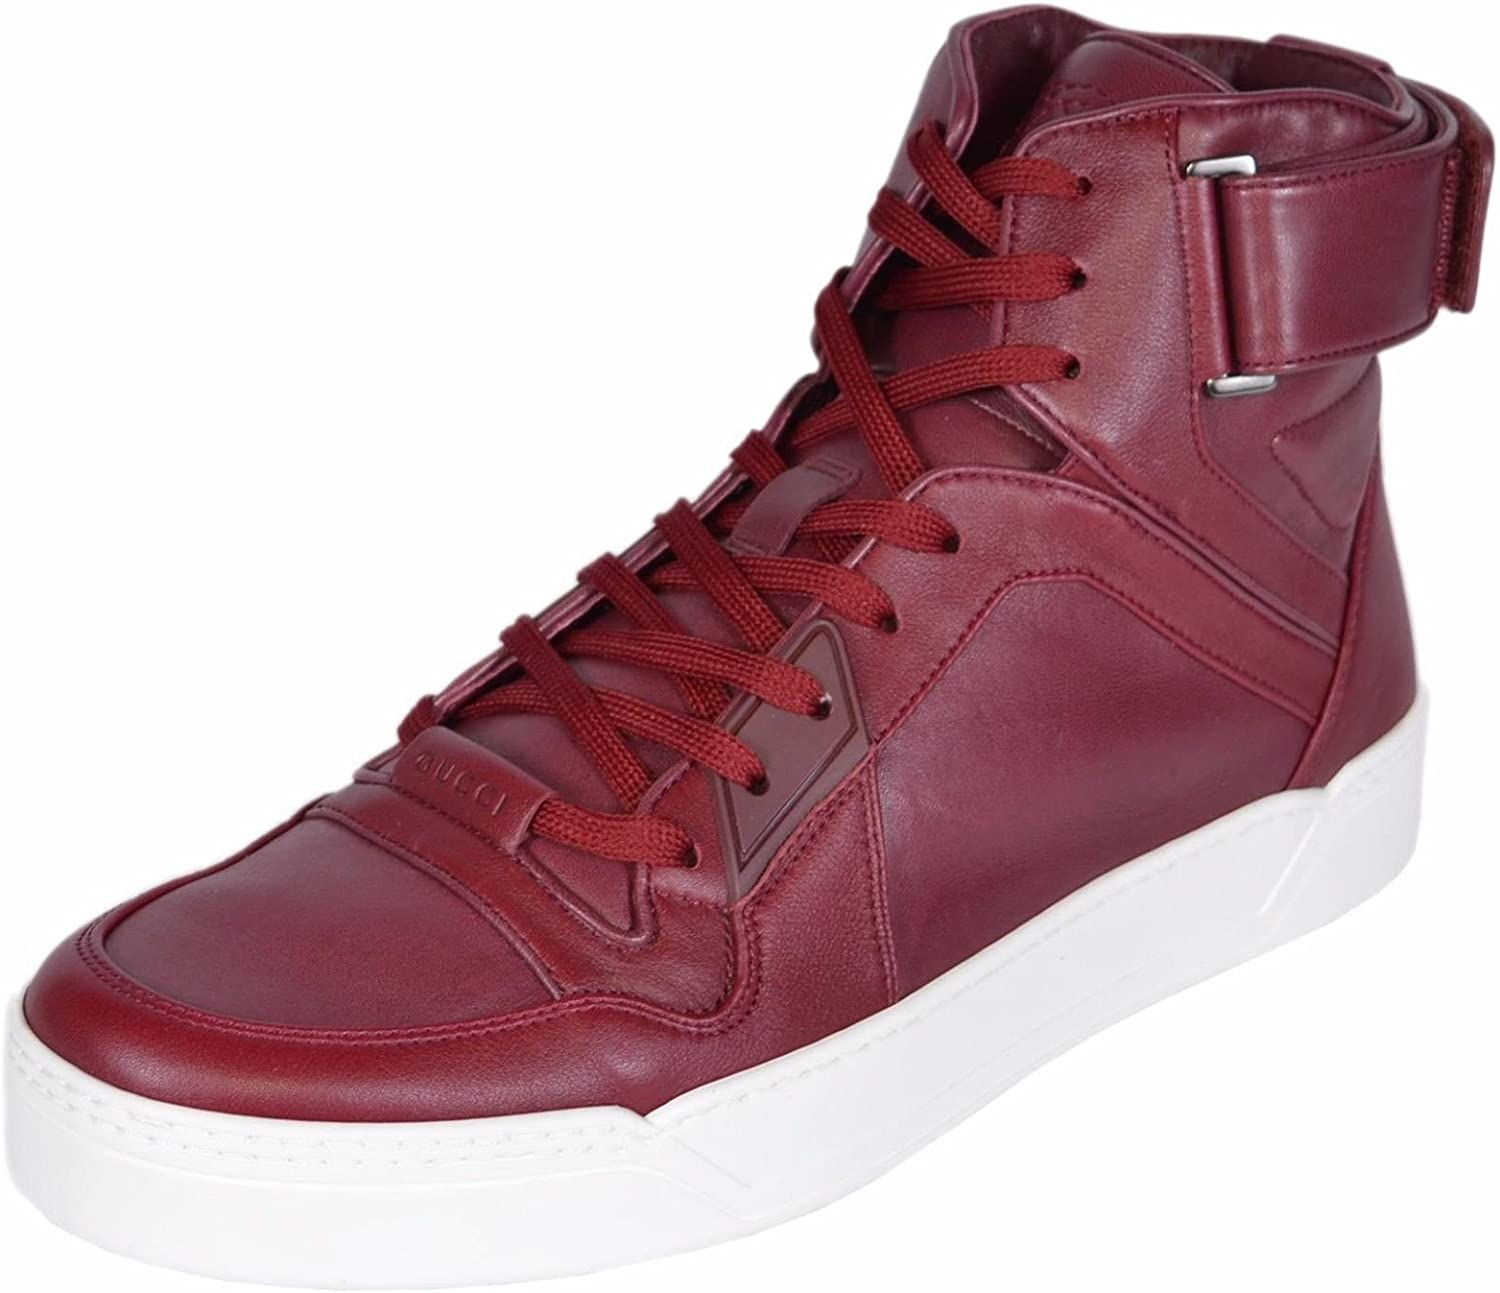 Gucci High Top Strong Dark Red Leather